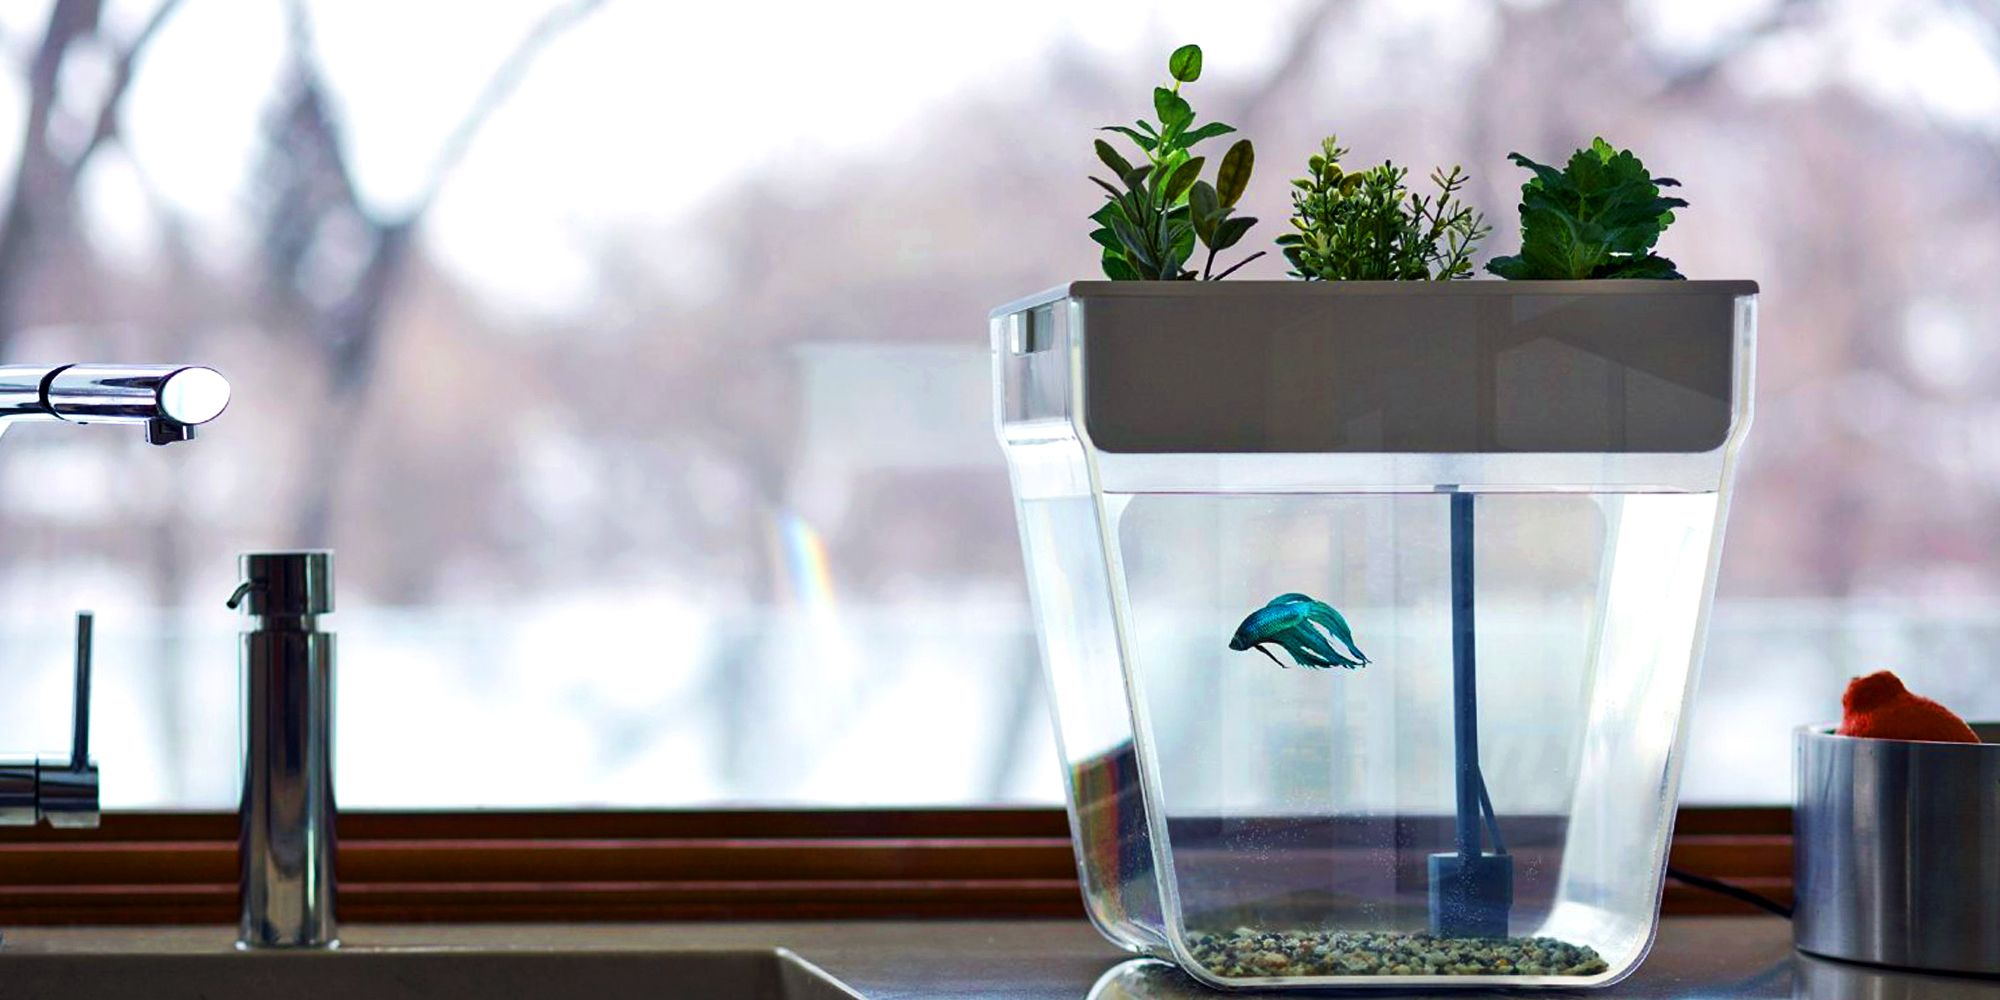 Nice 5 Best Aquatic Ecosystems Of 2018   Freshwater Aquatic Ecosystems And  Terrariums